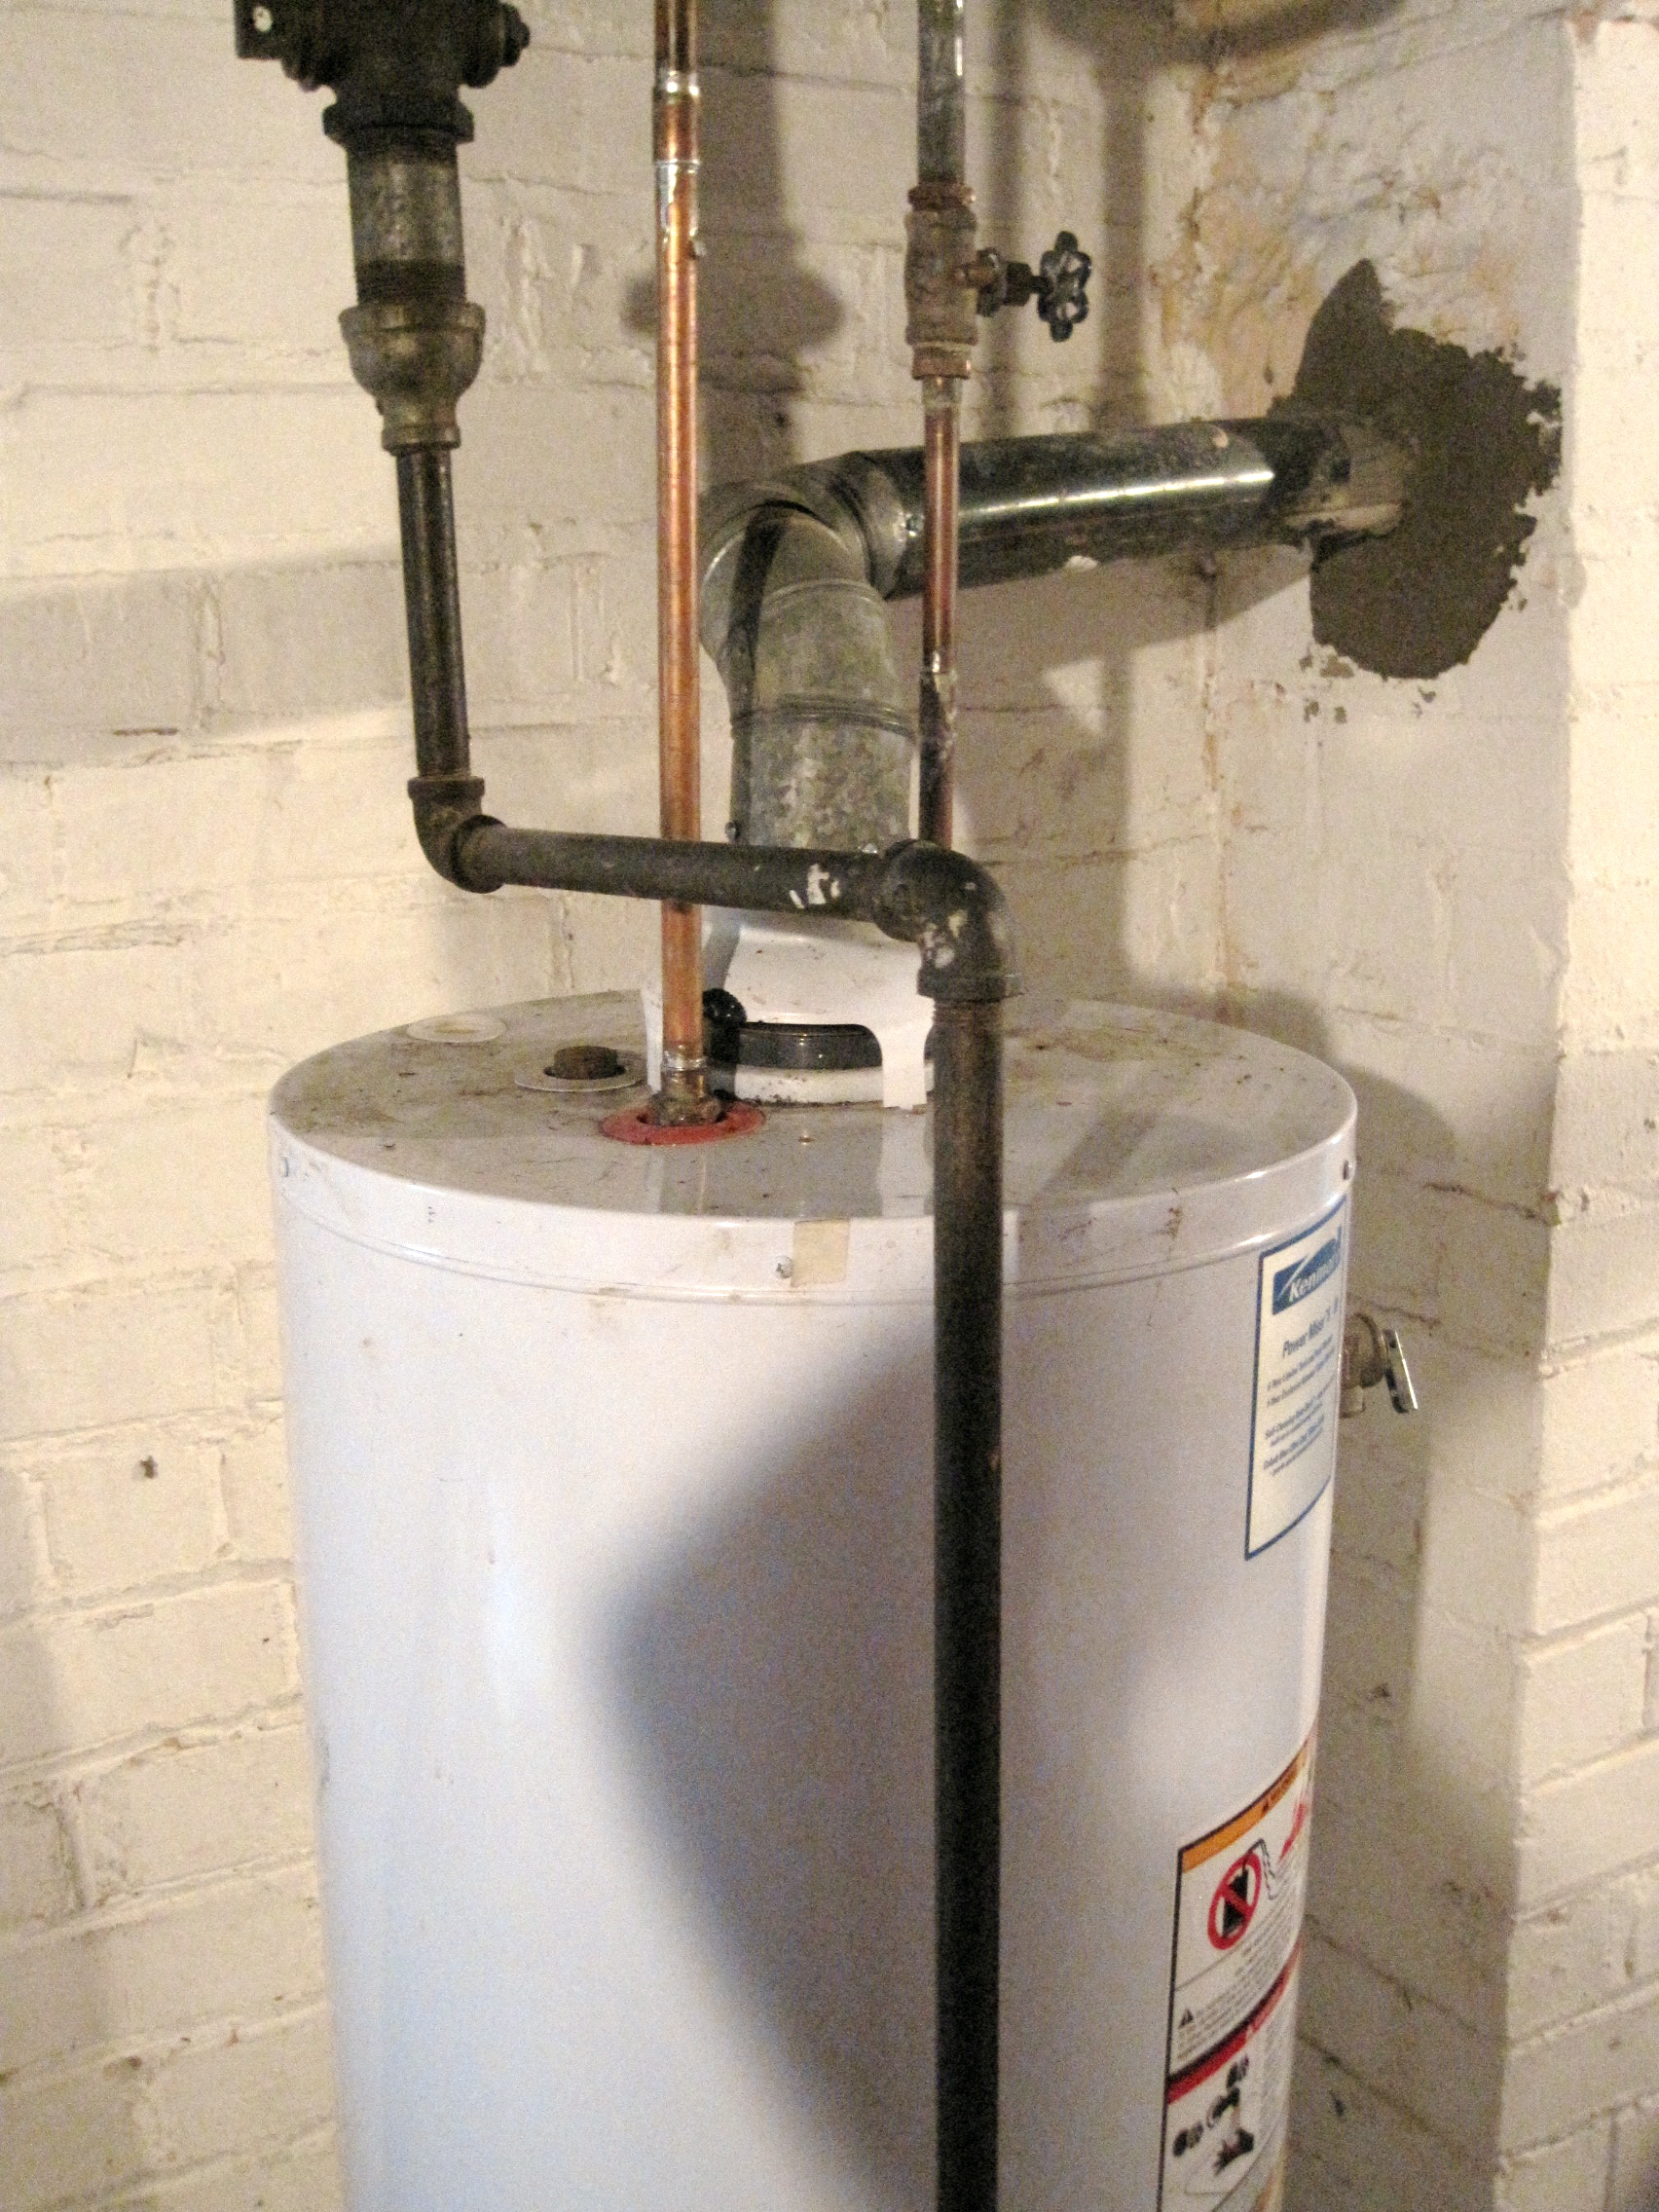 How to vent a hot water heater - When The Hvac Guy Turned Off The Water Heater